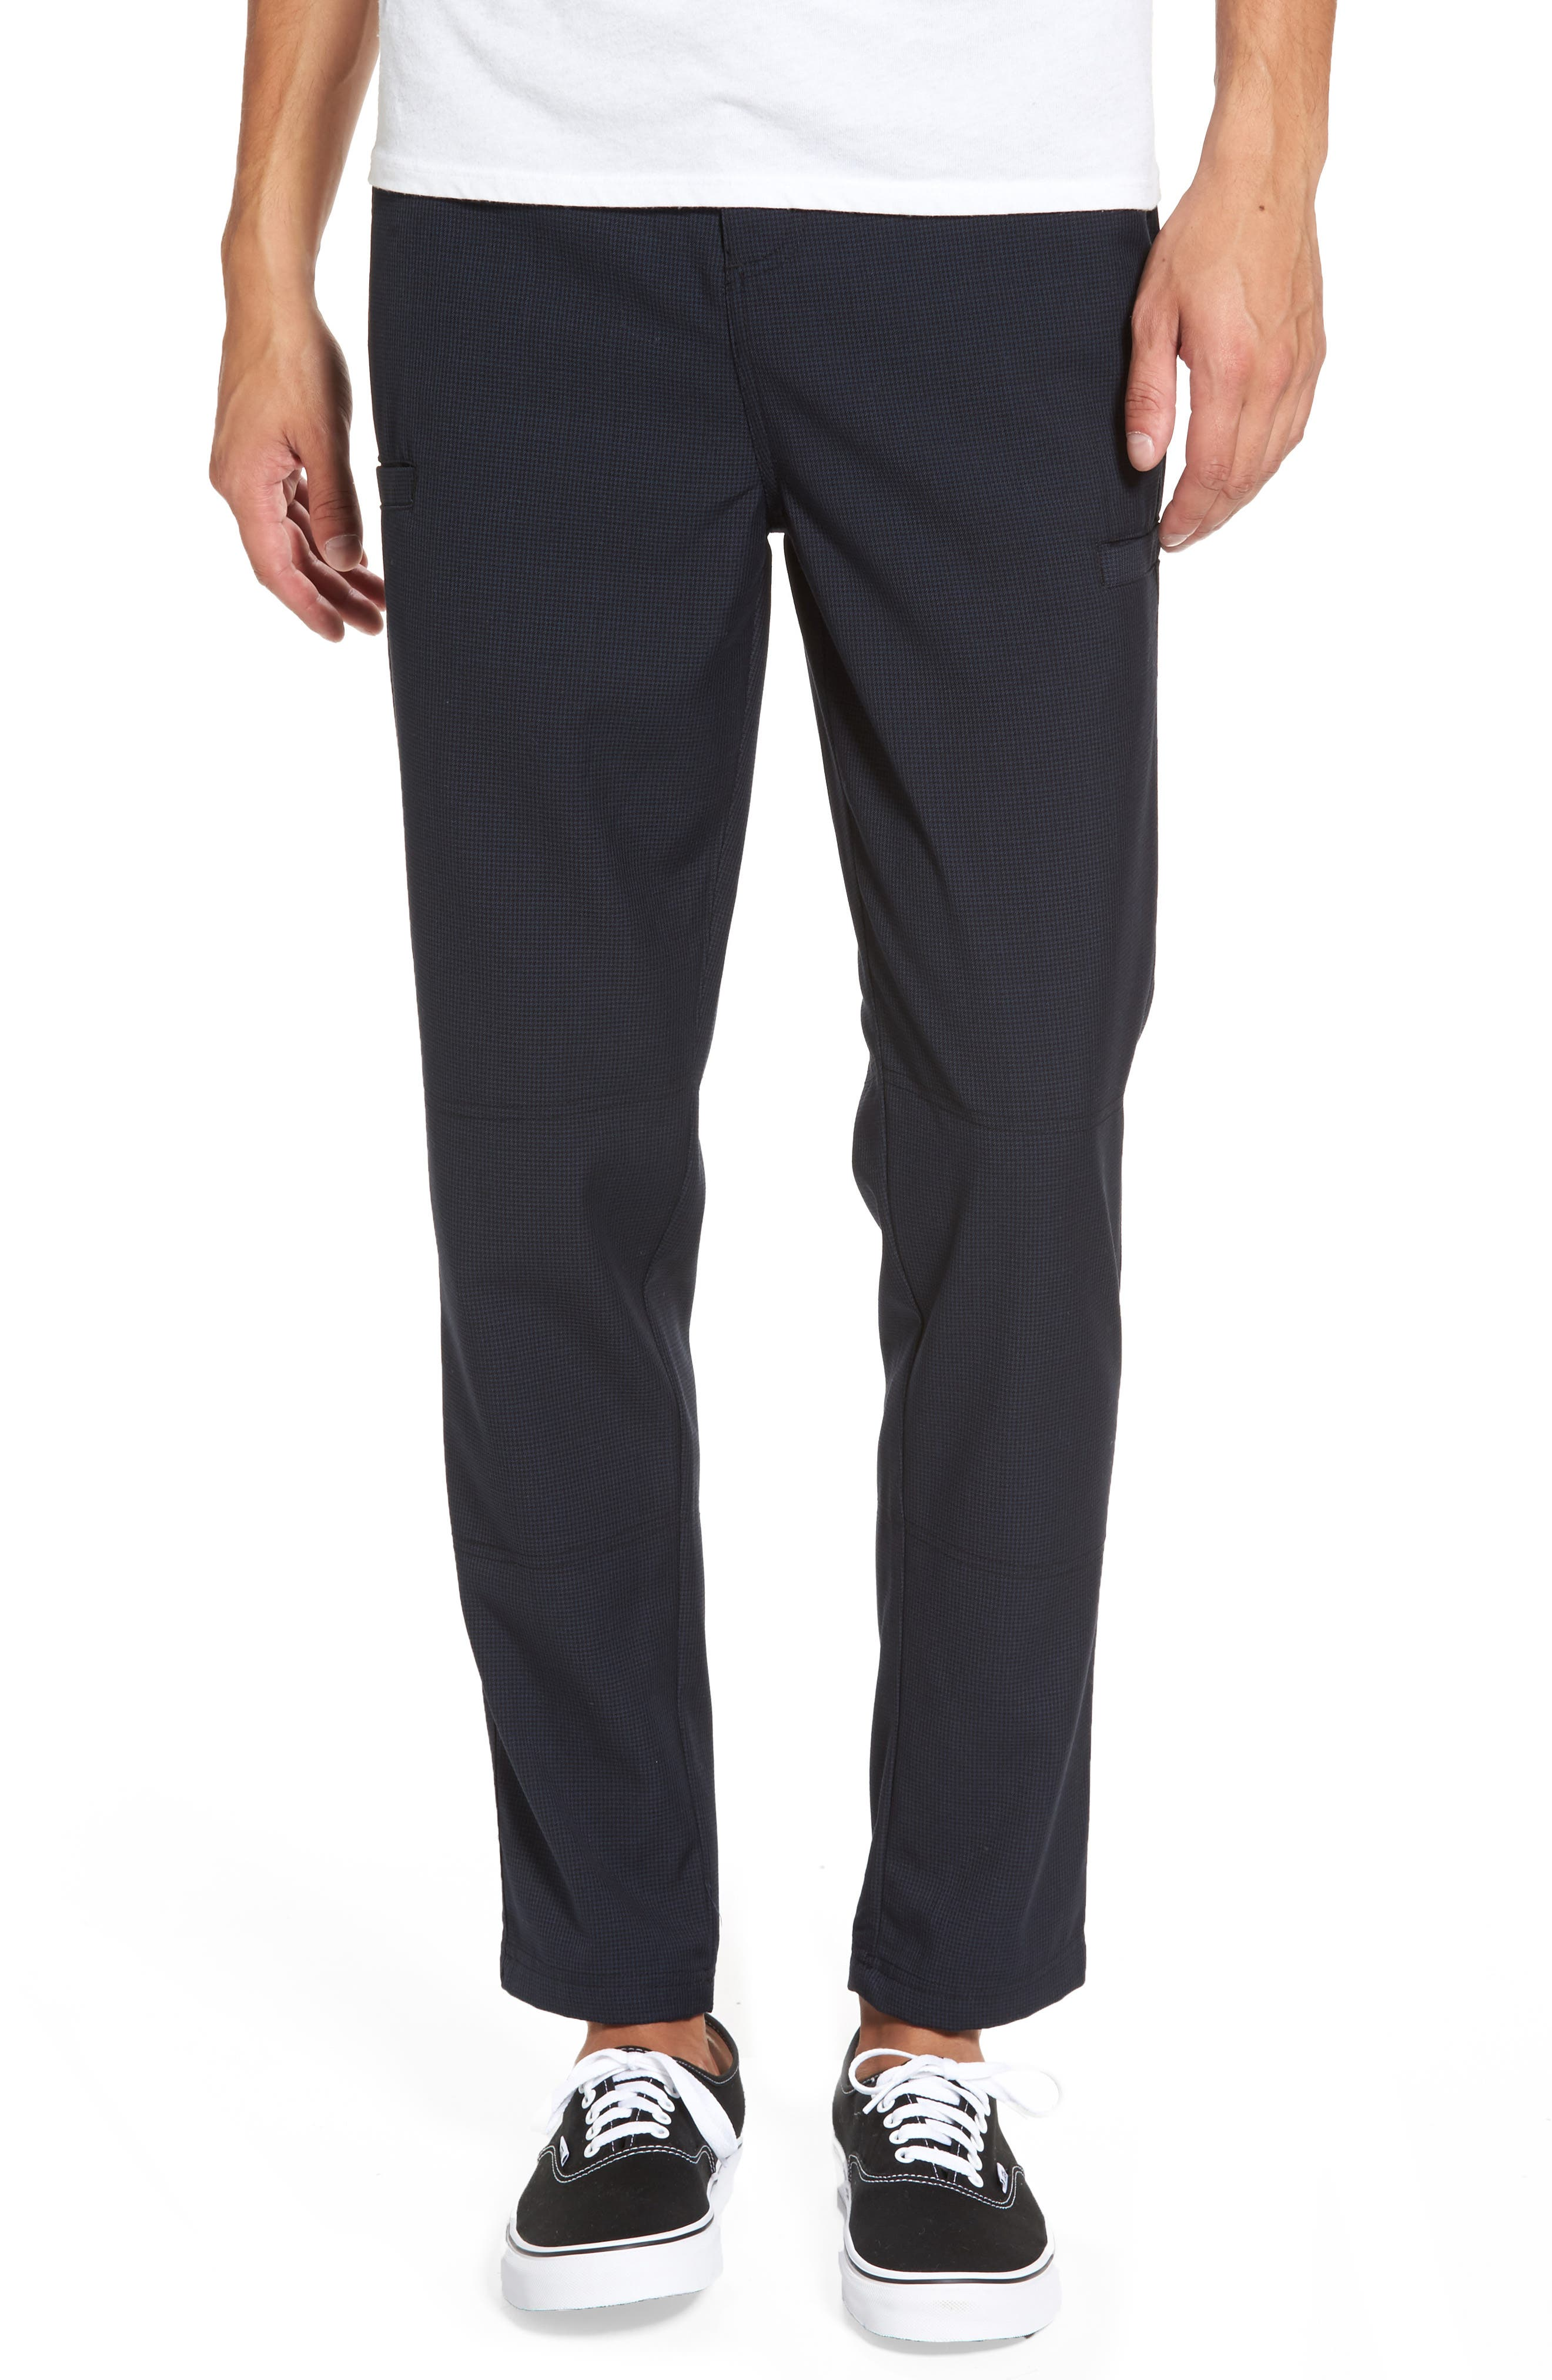 Haycroft Trousers,                             Main thumbnail 1, color,                             400